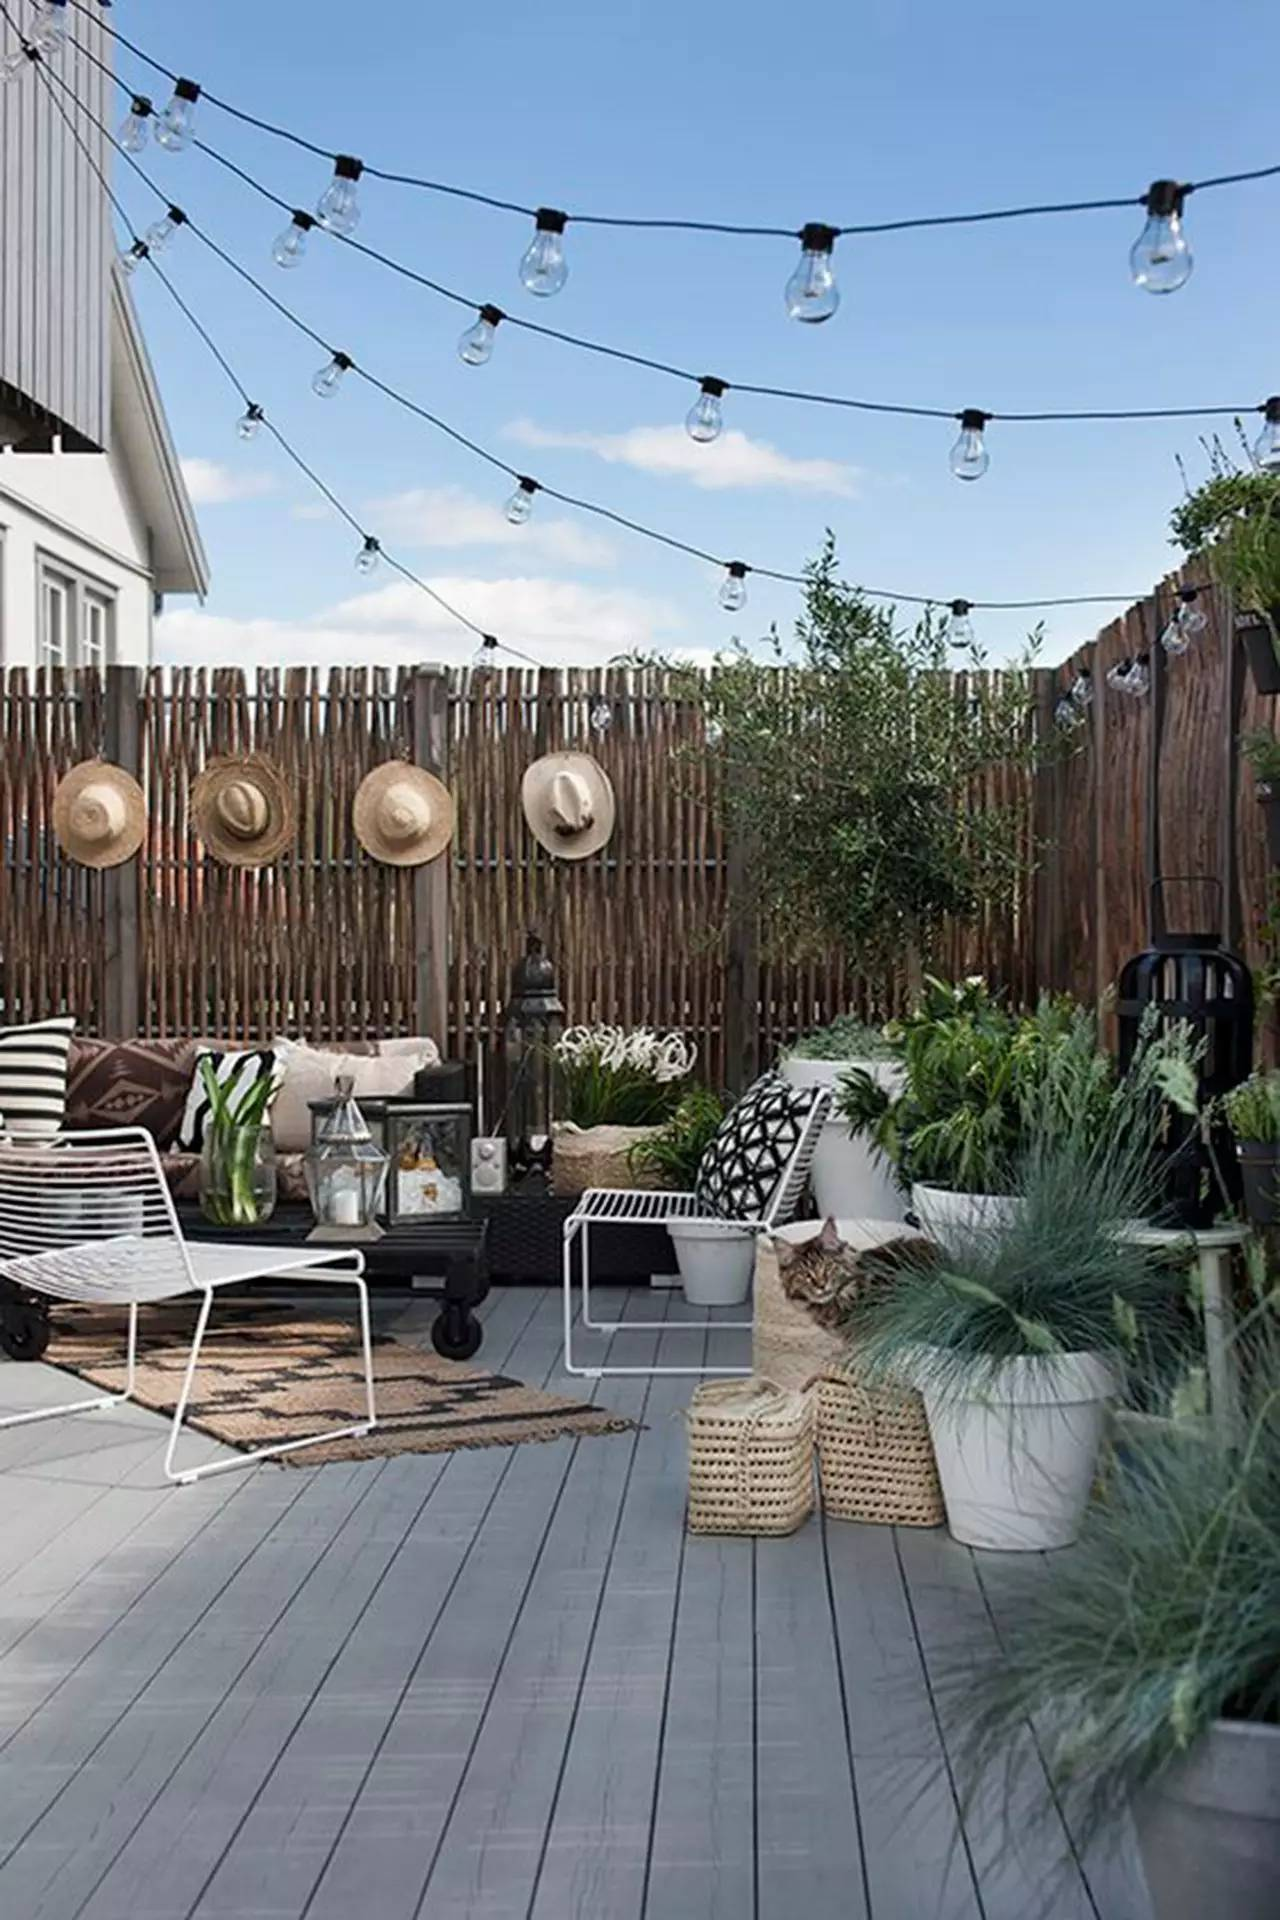 Decoration Terrasse Simple 25 Best Diy Patio Decoration Ideas And Designs For 2019